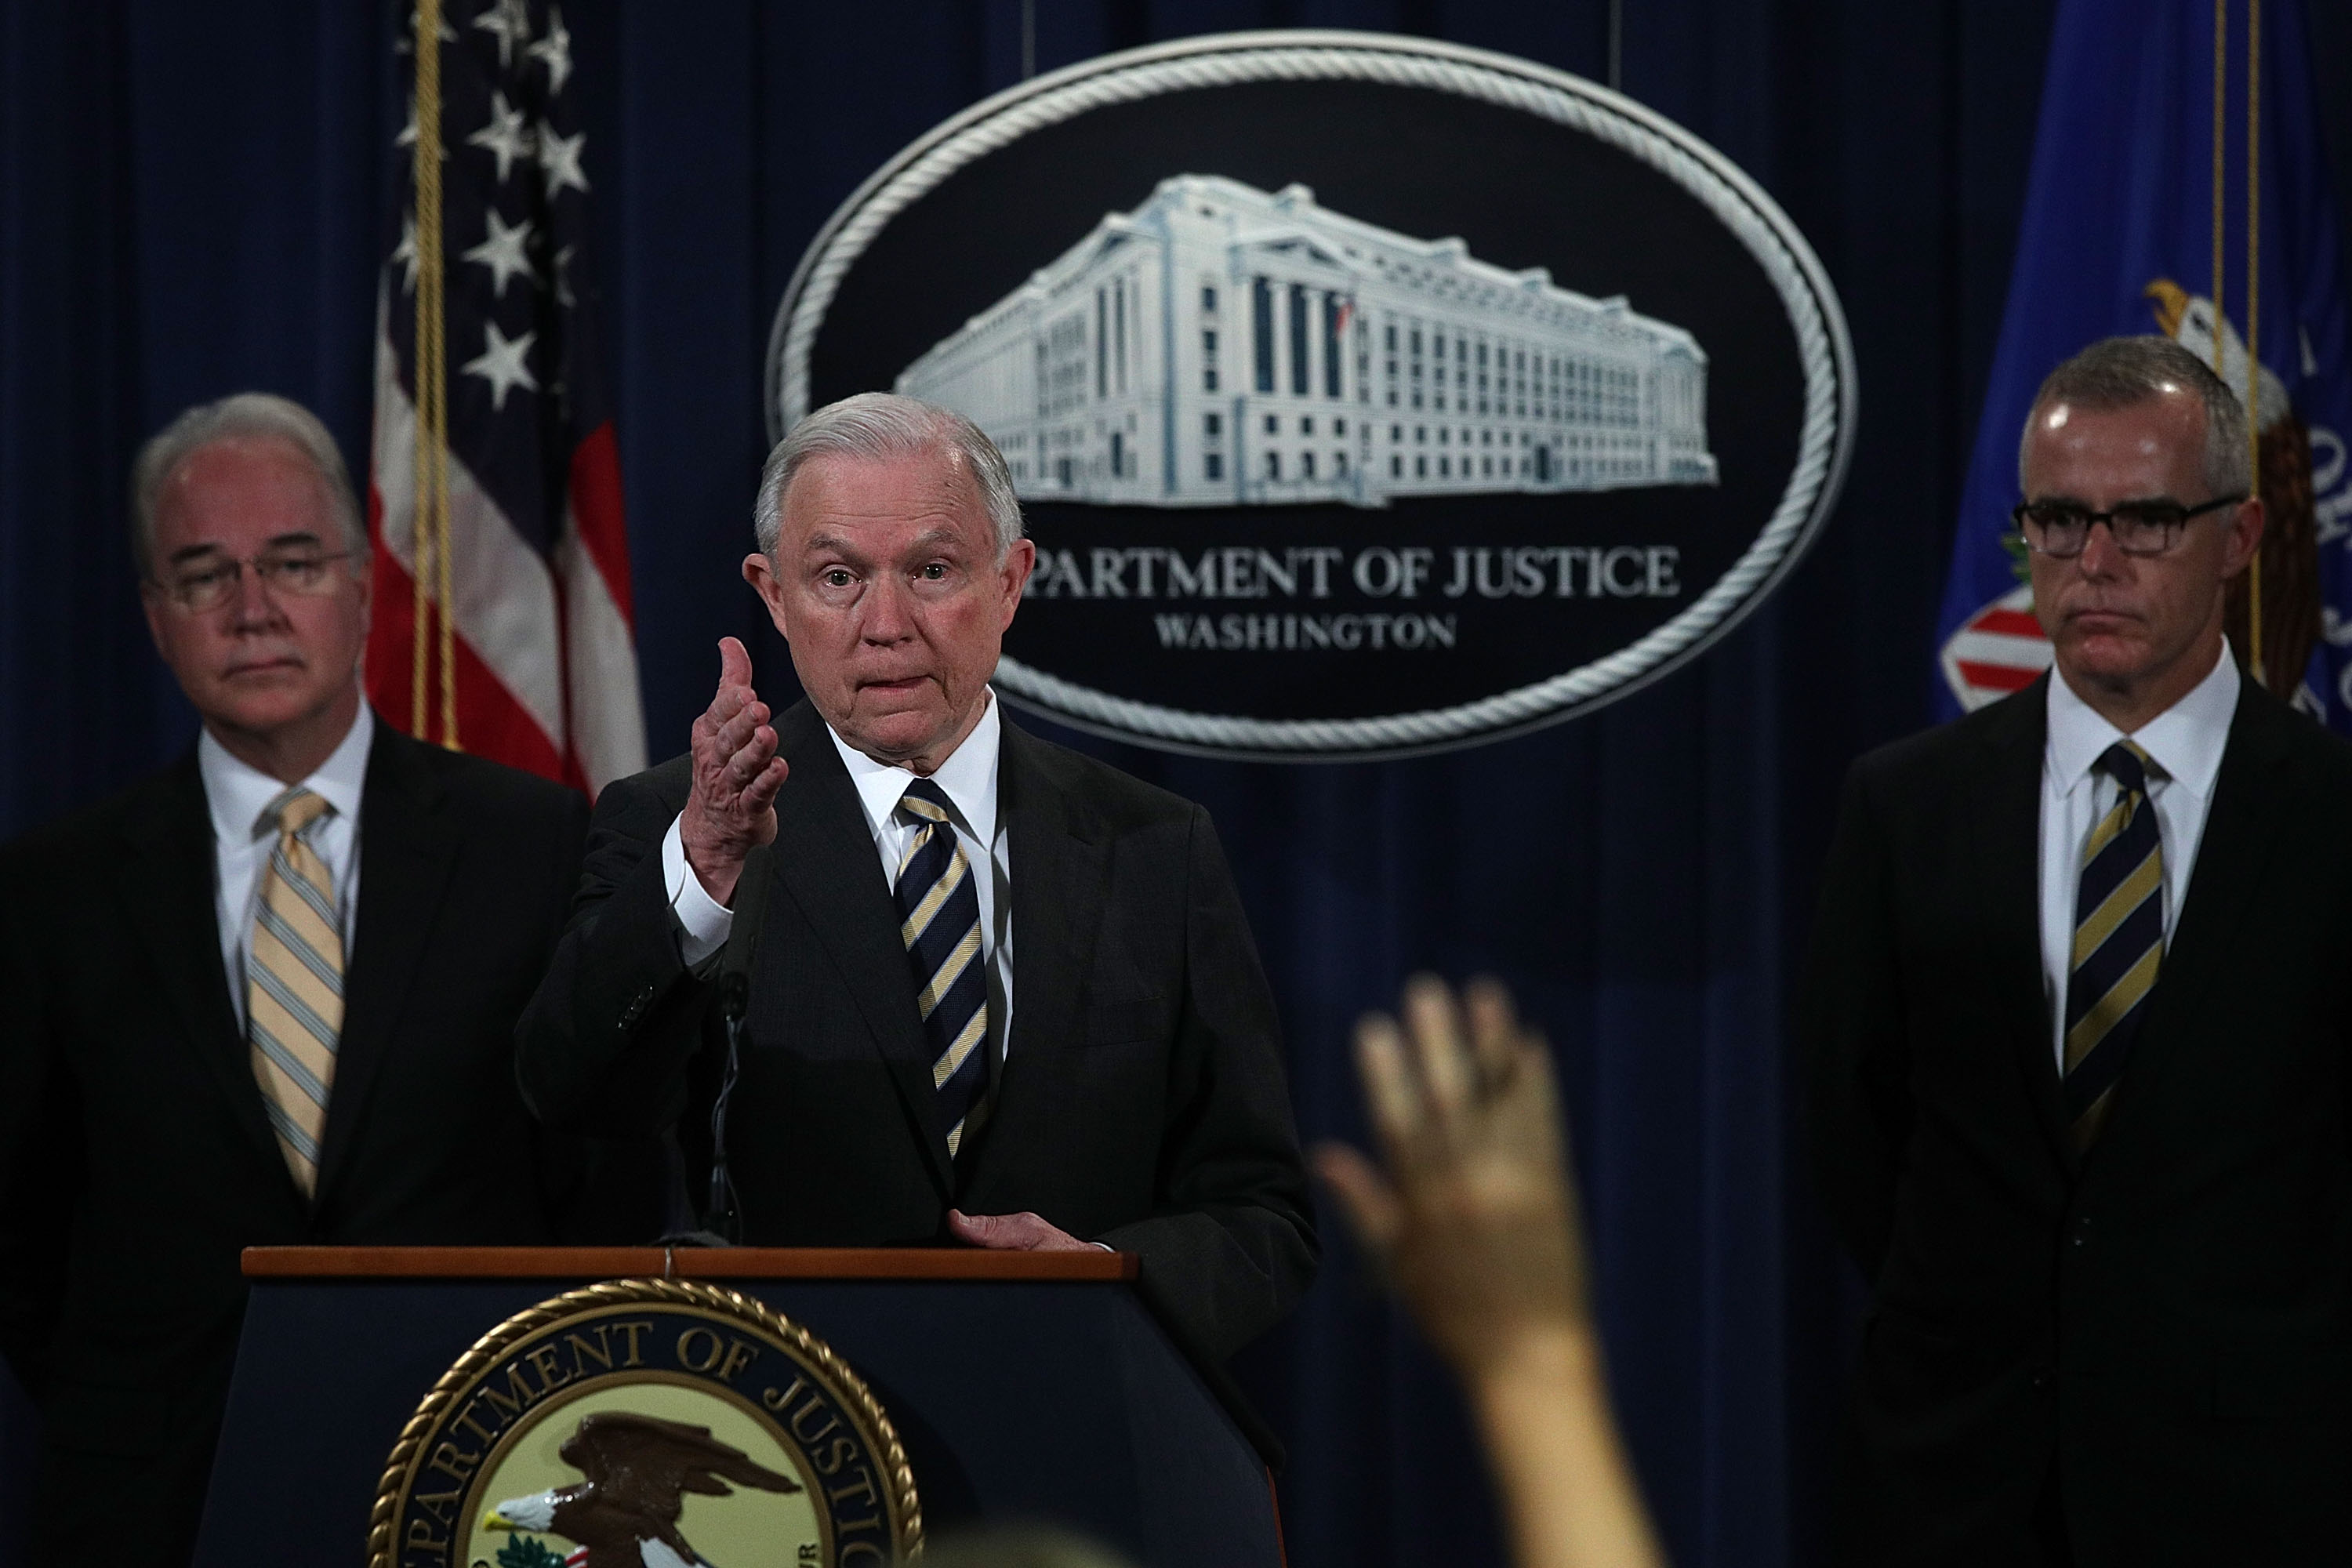 Attorney General Jeff Sessions takes questions as Acting FBI Director Andrew McCabe (R) and Secretary of Health and Human Services Tom Price (L) look on during a news conference to announce significant law enforcement actions July 13, 2017 at the Justice Department in Washington, D.C.